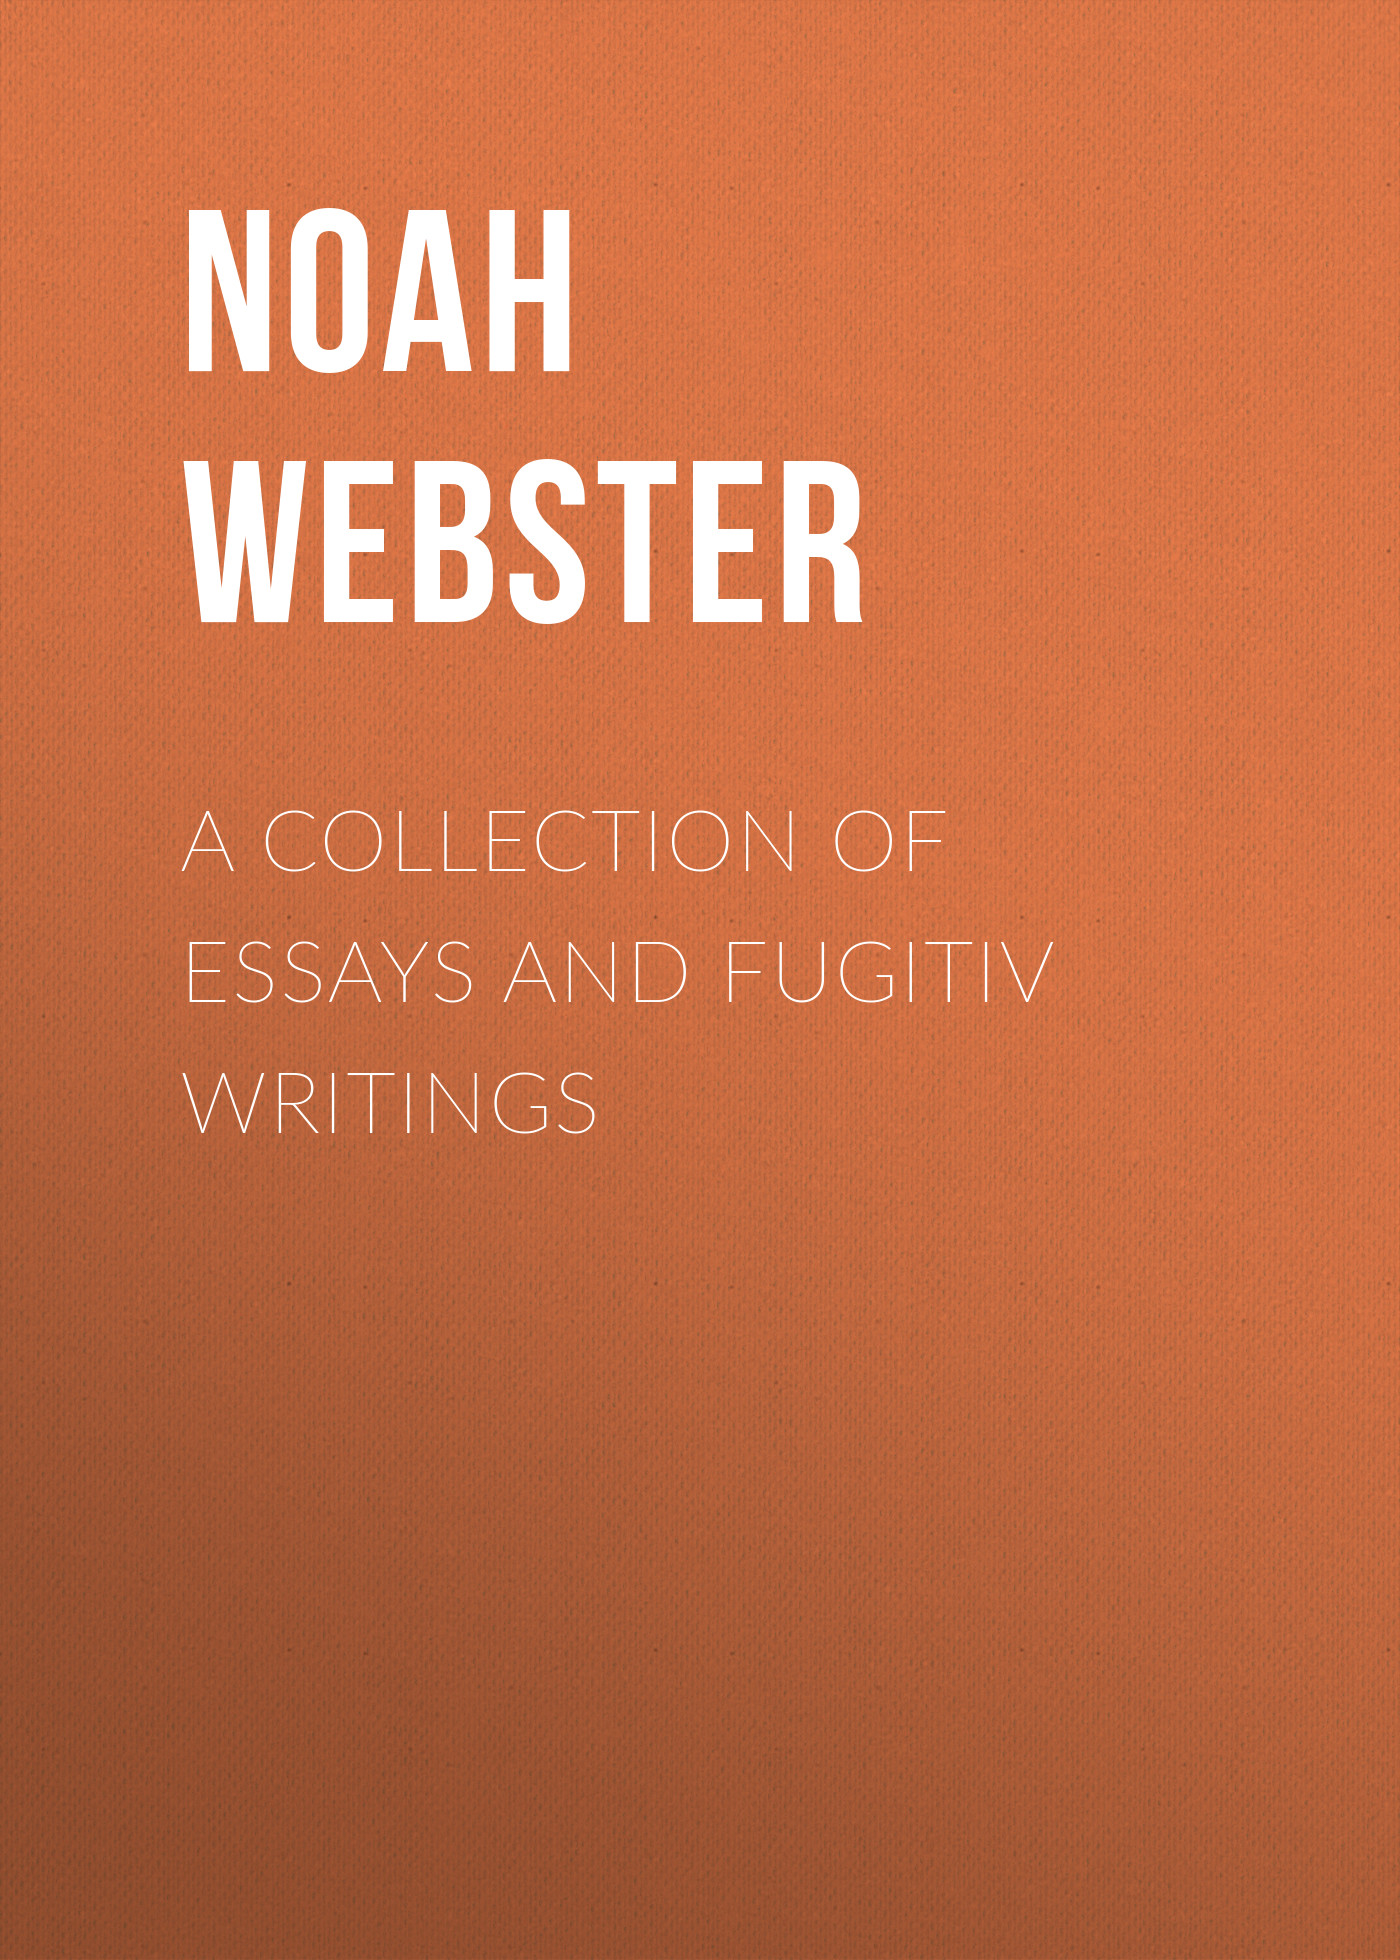 цена Noah Webster A Collection of Essays and Fugitiv Writings